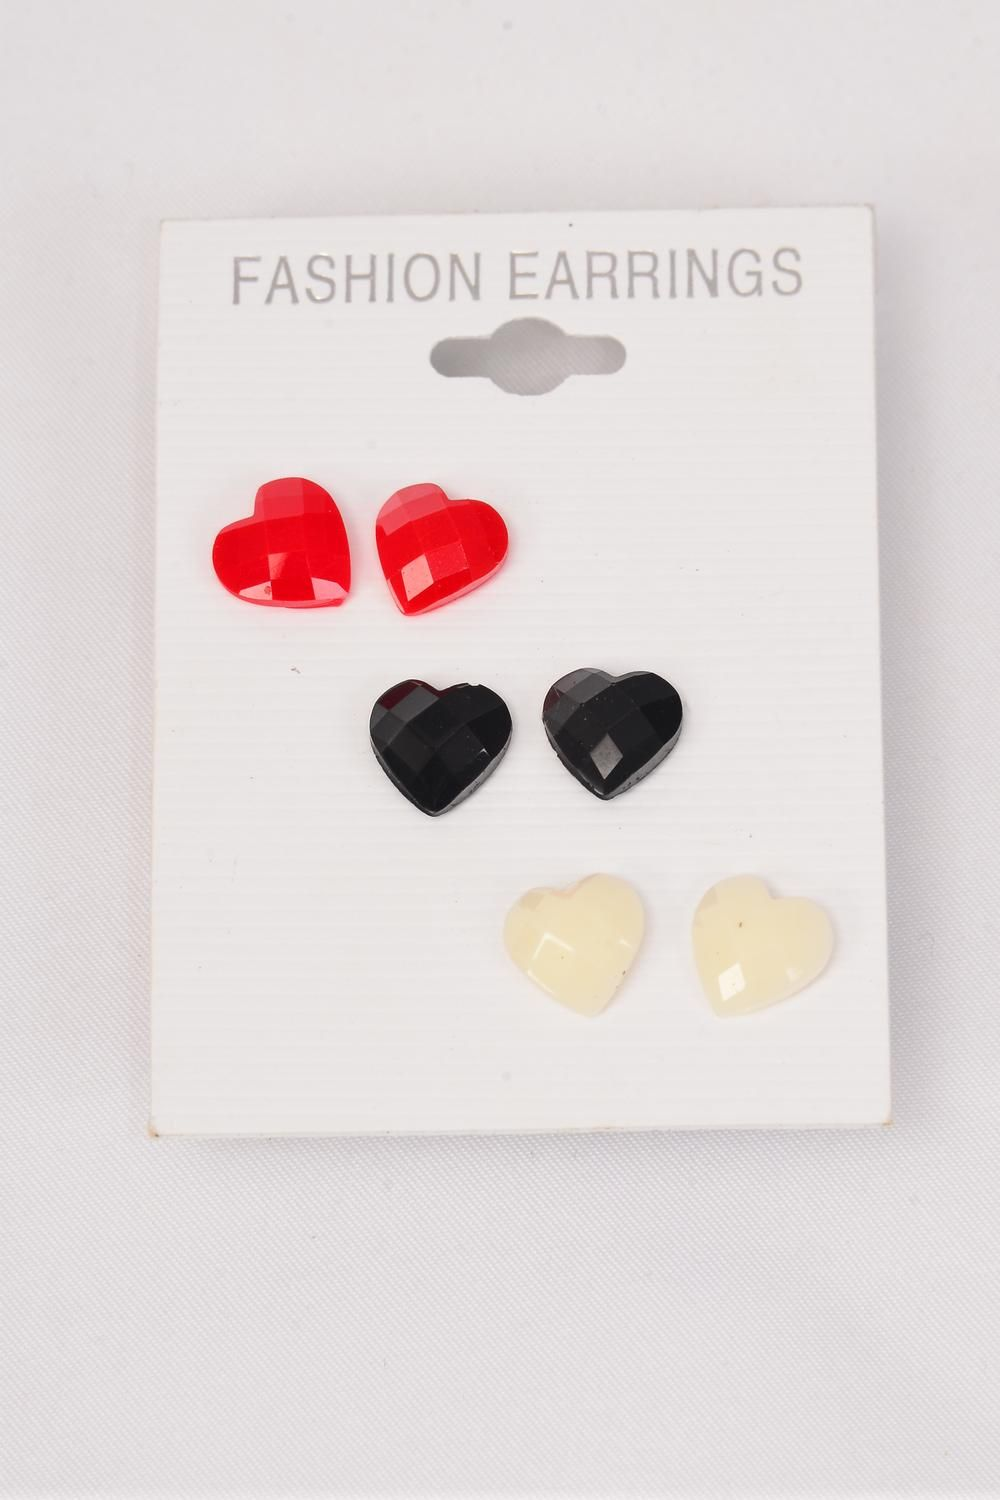 Earrings 3 Pair Poly Heart Red White Black Mix/DZ **Post** Red White Black Mix,Earring Card & Opp Bag & UPC Code,3 pair per Card,12 card=Dozen